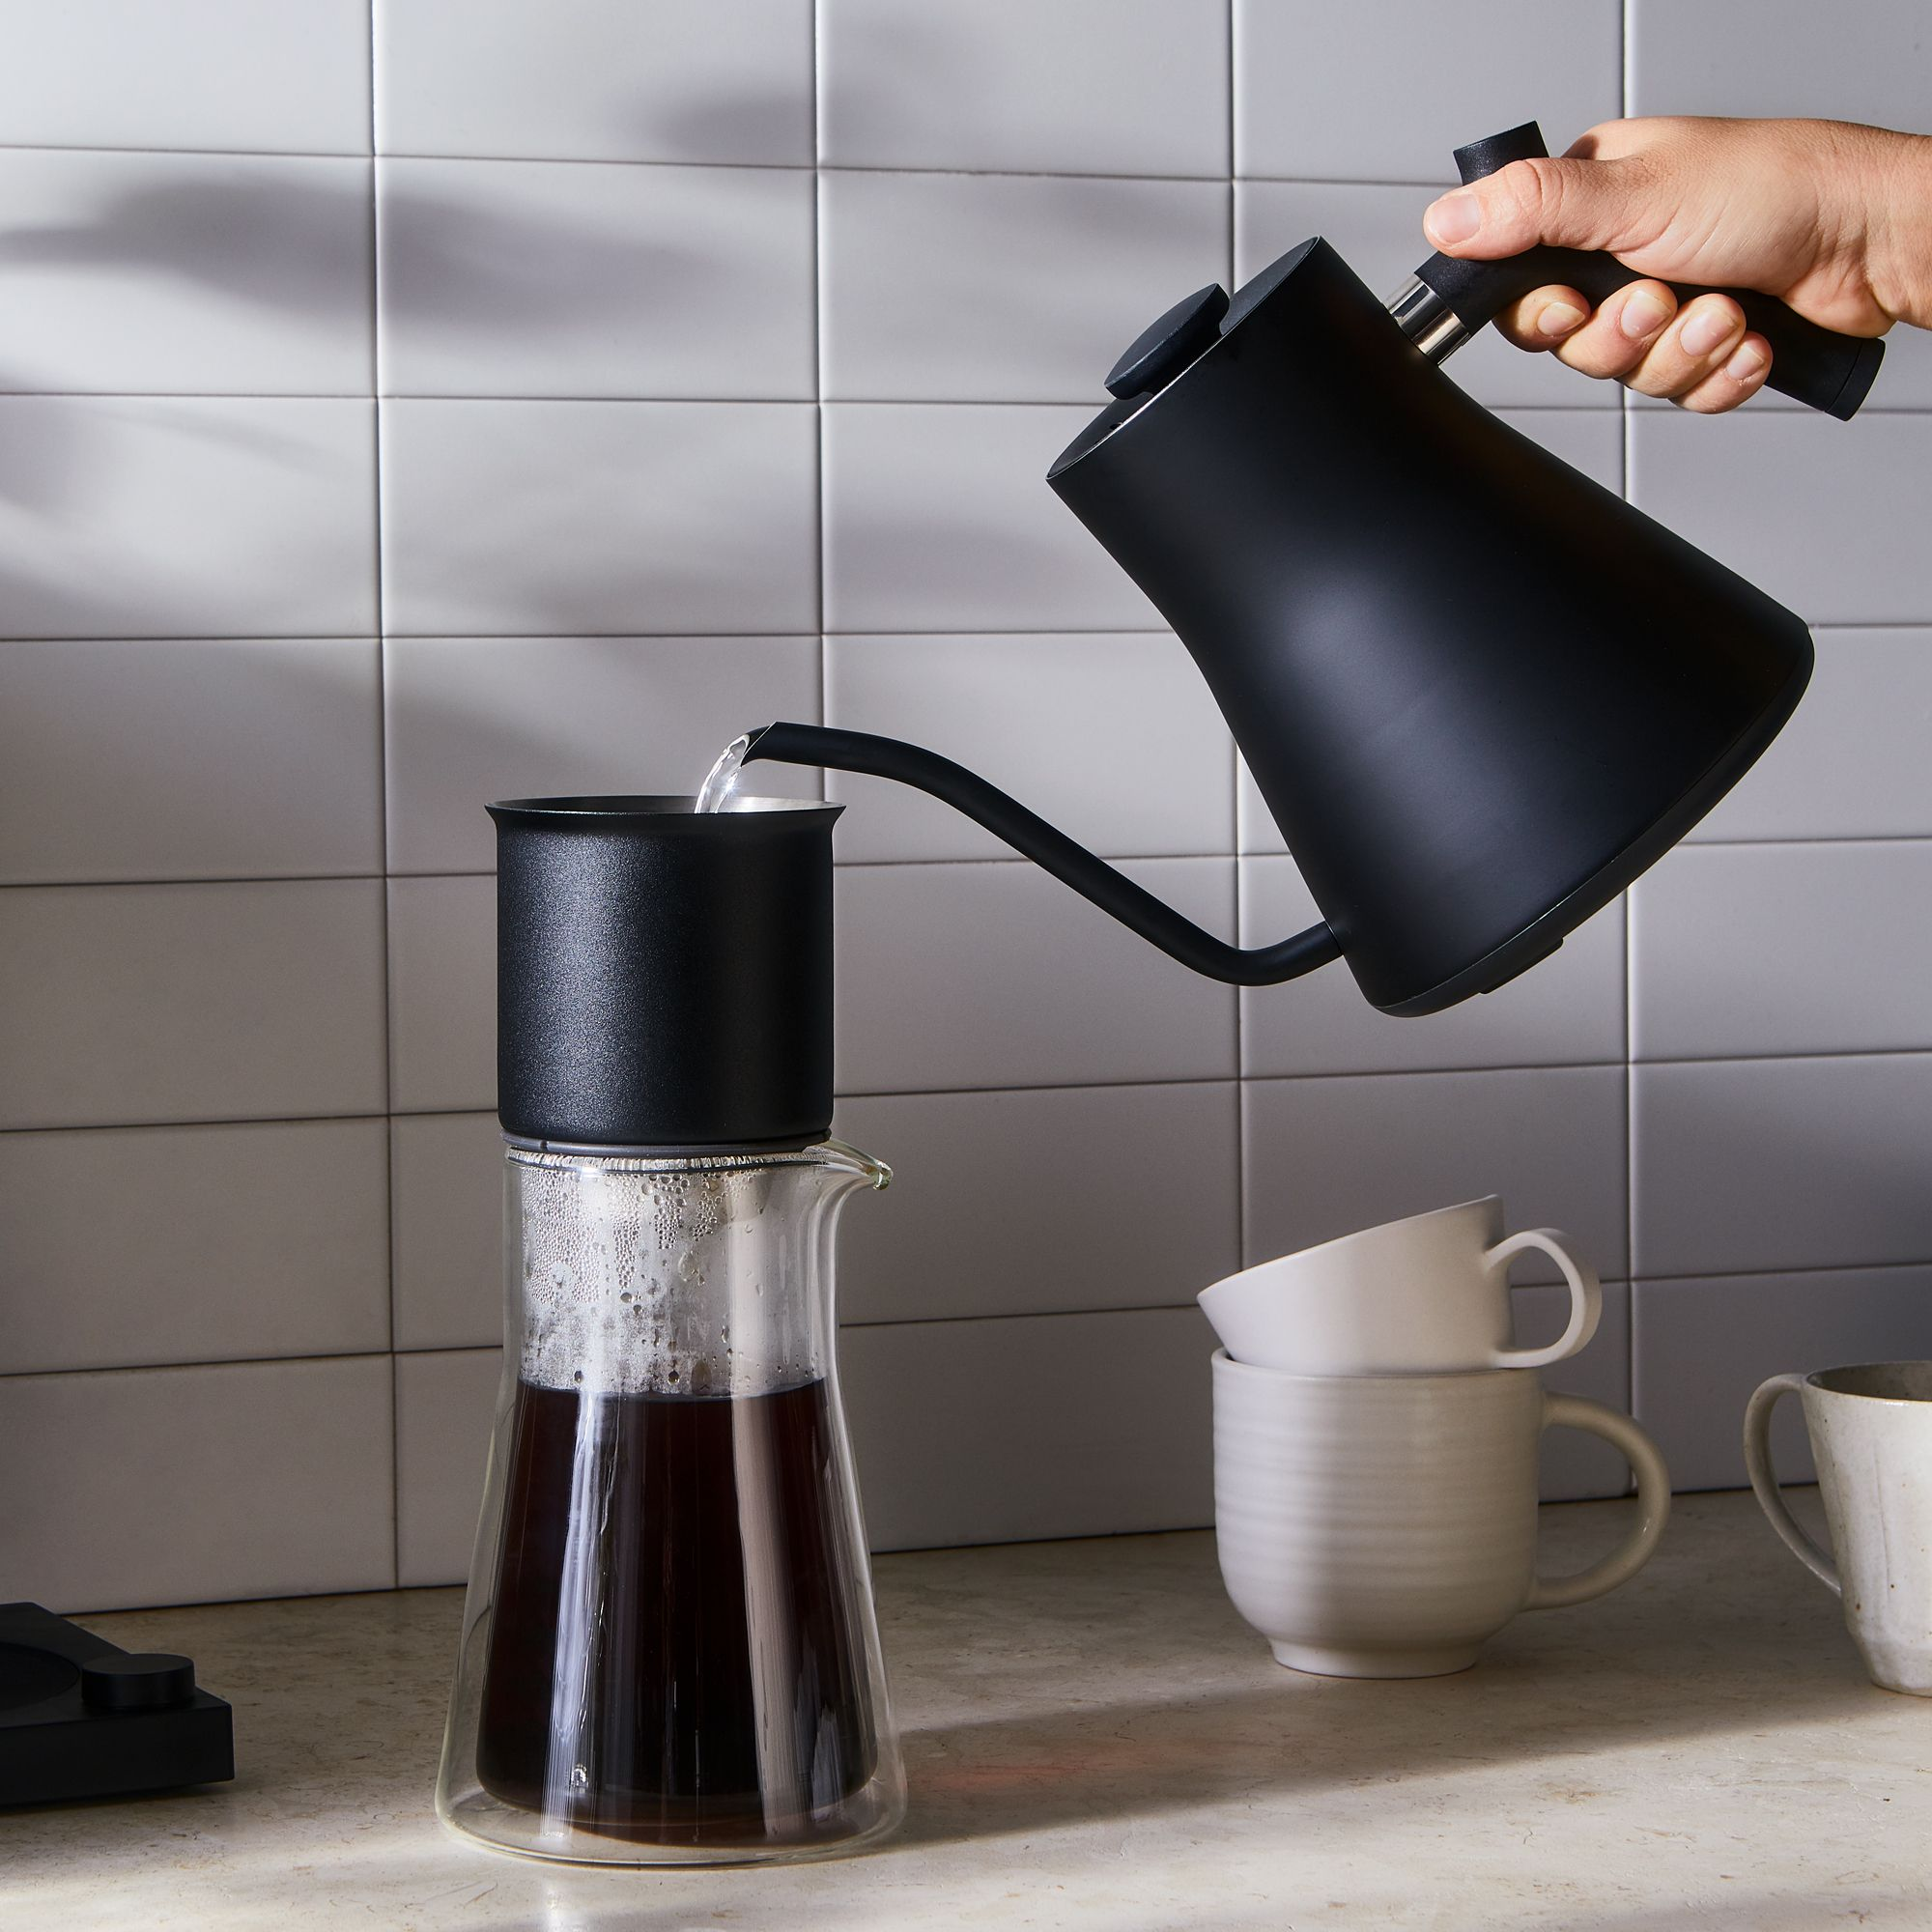 kettle pouring water into pour over coffee maker set in a glass carafe